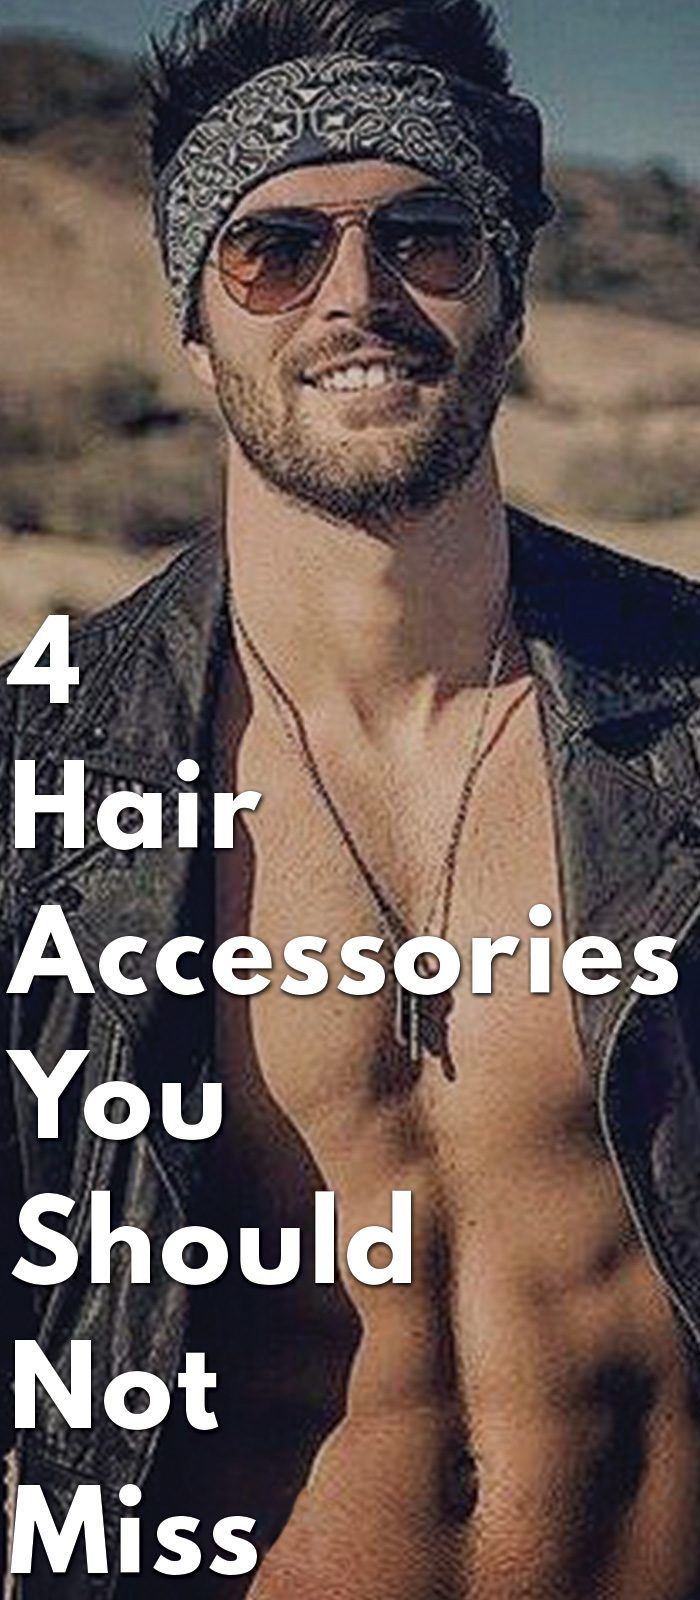 4-Hair-Accessories-You-Should-Not-Miss